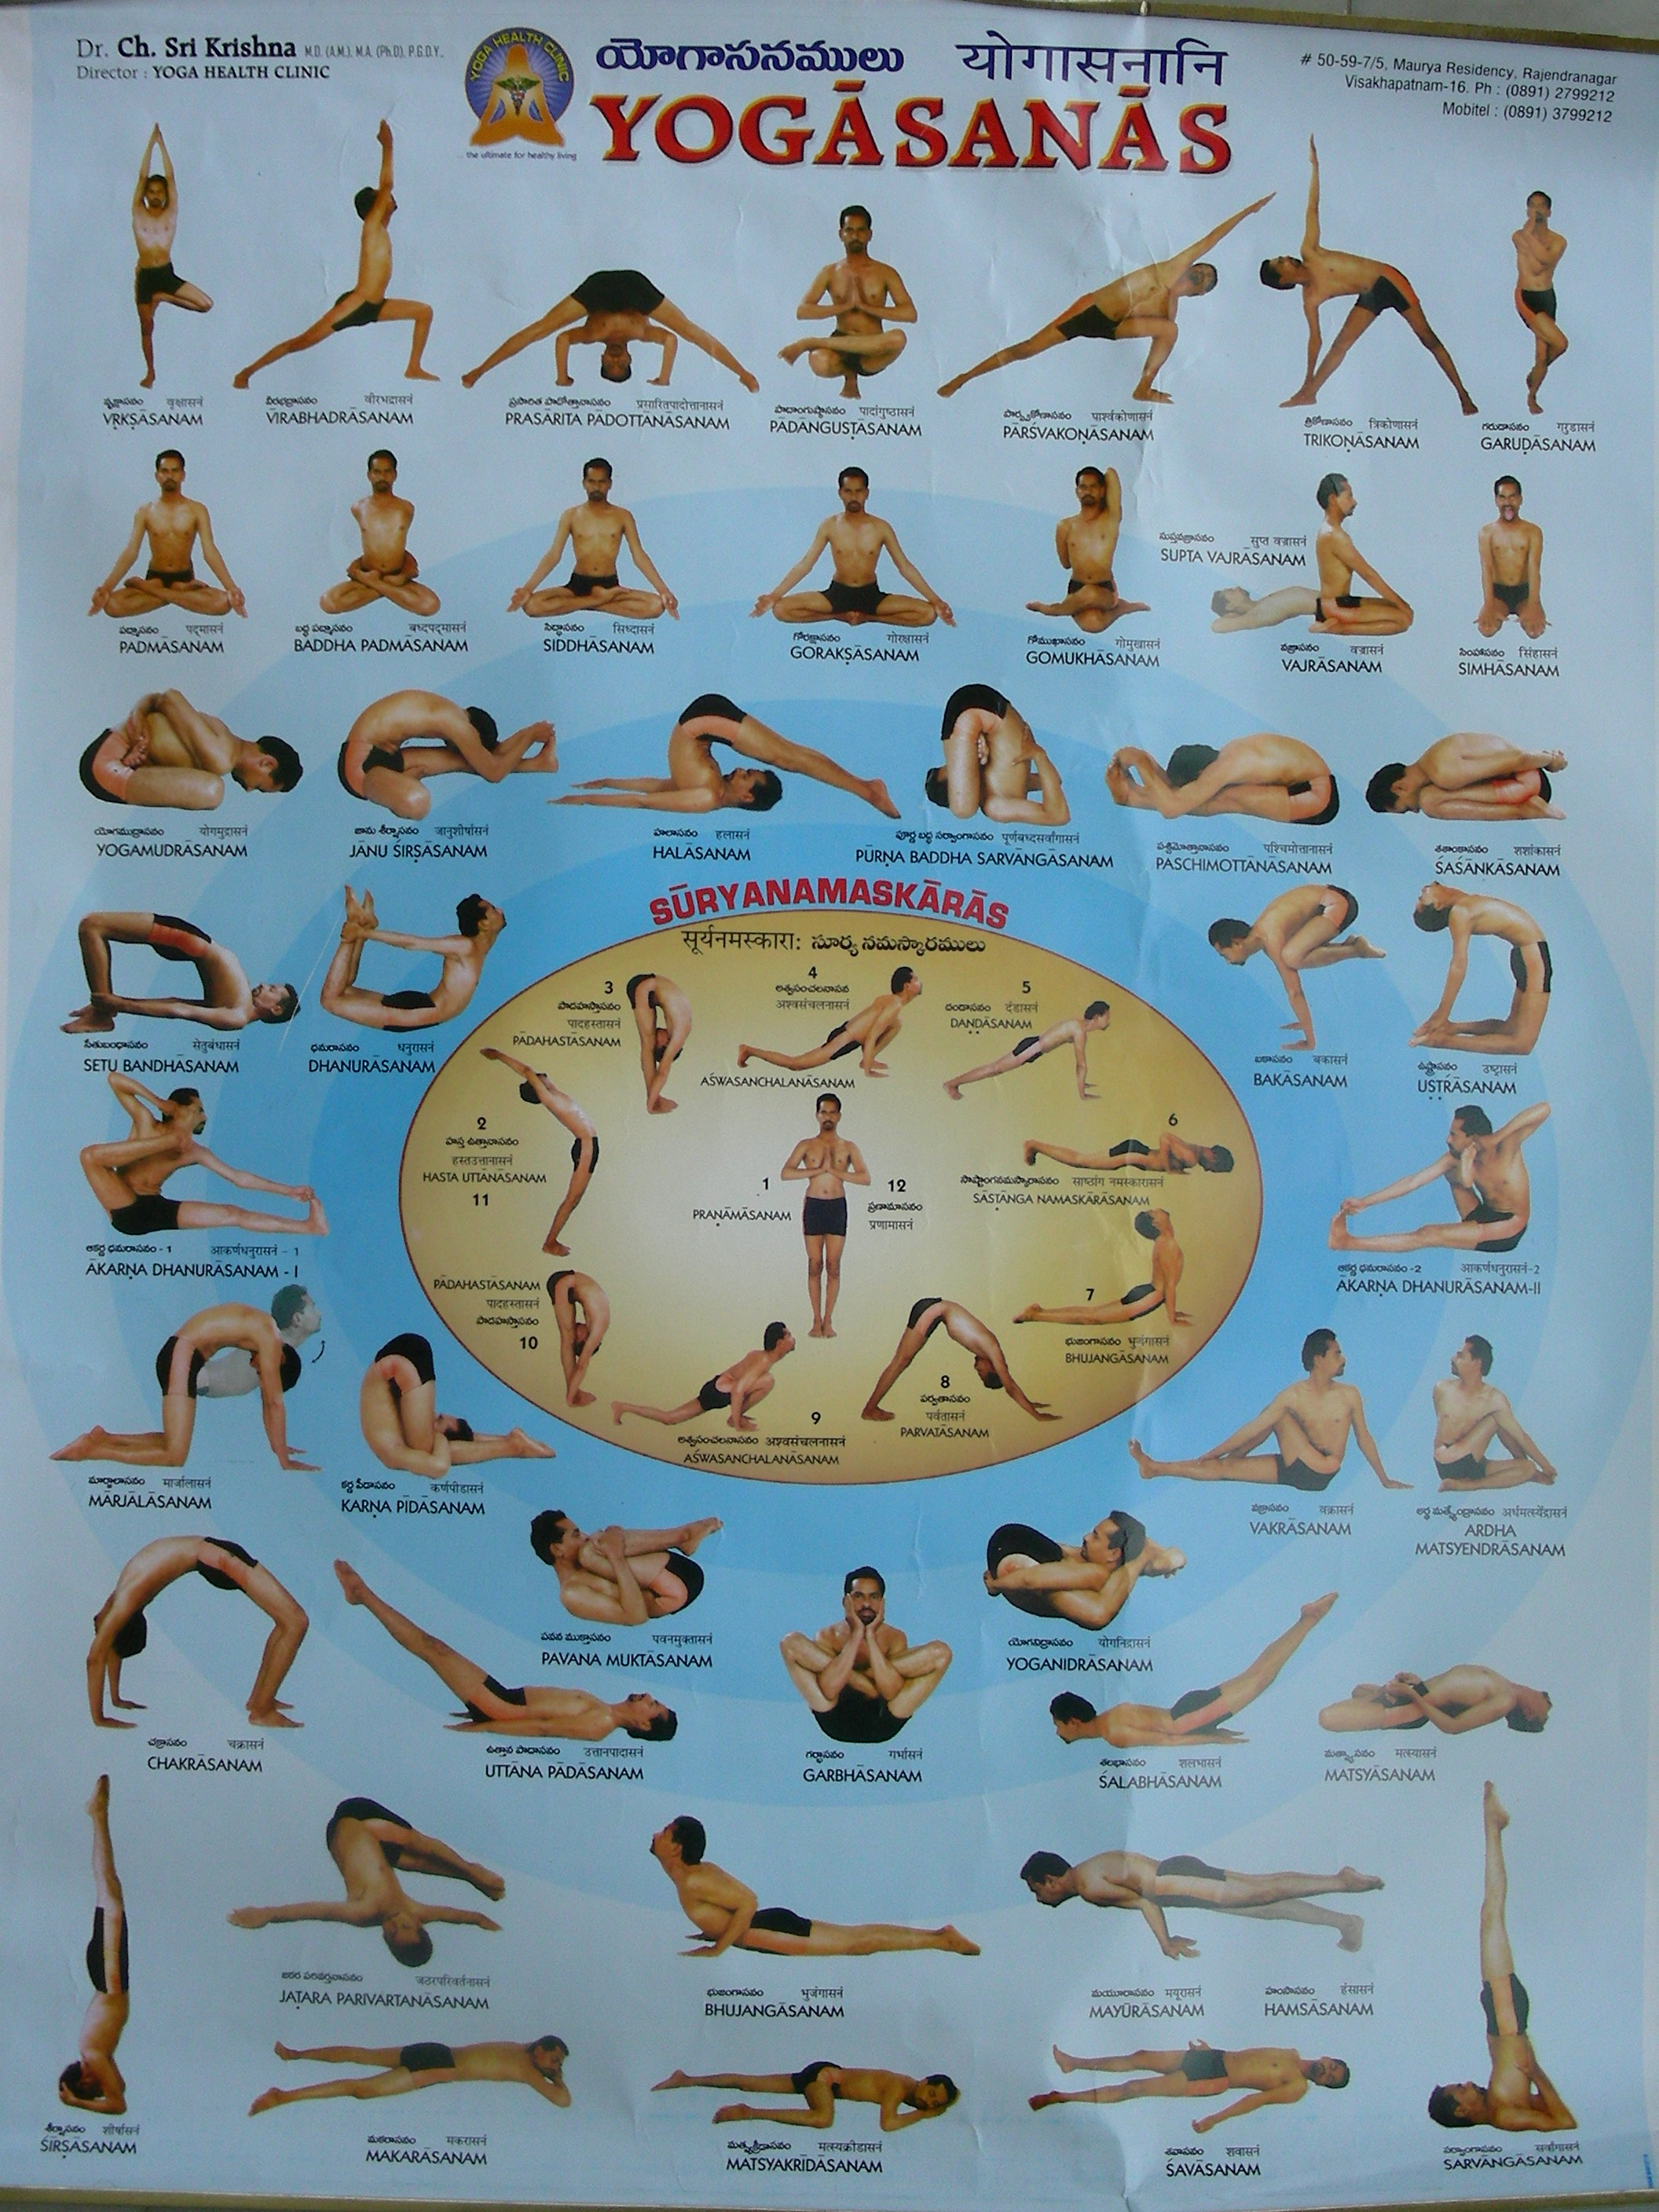 509 ALL NEW YOGA ASANAS NAMES AND POSTURES